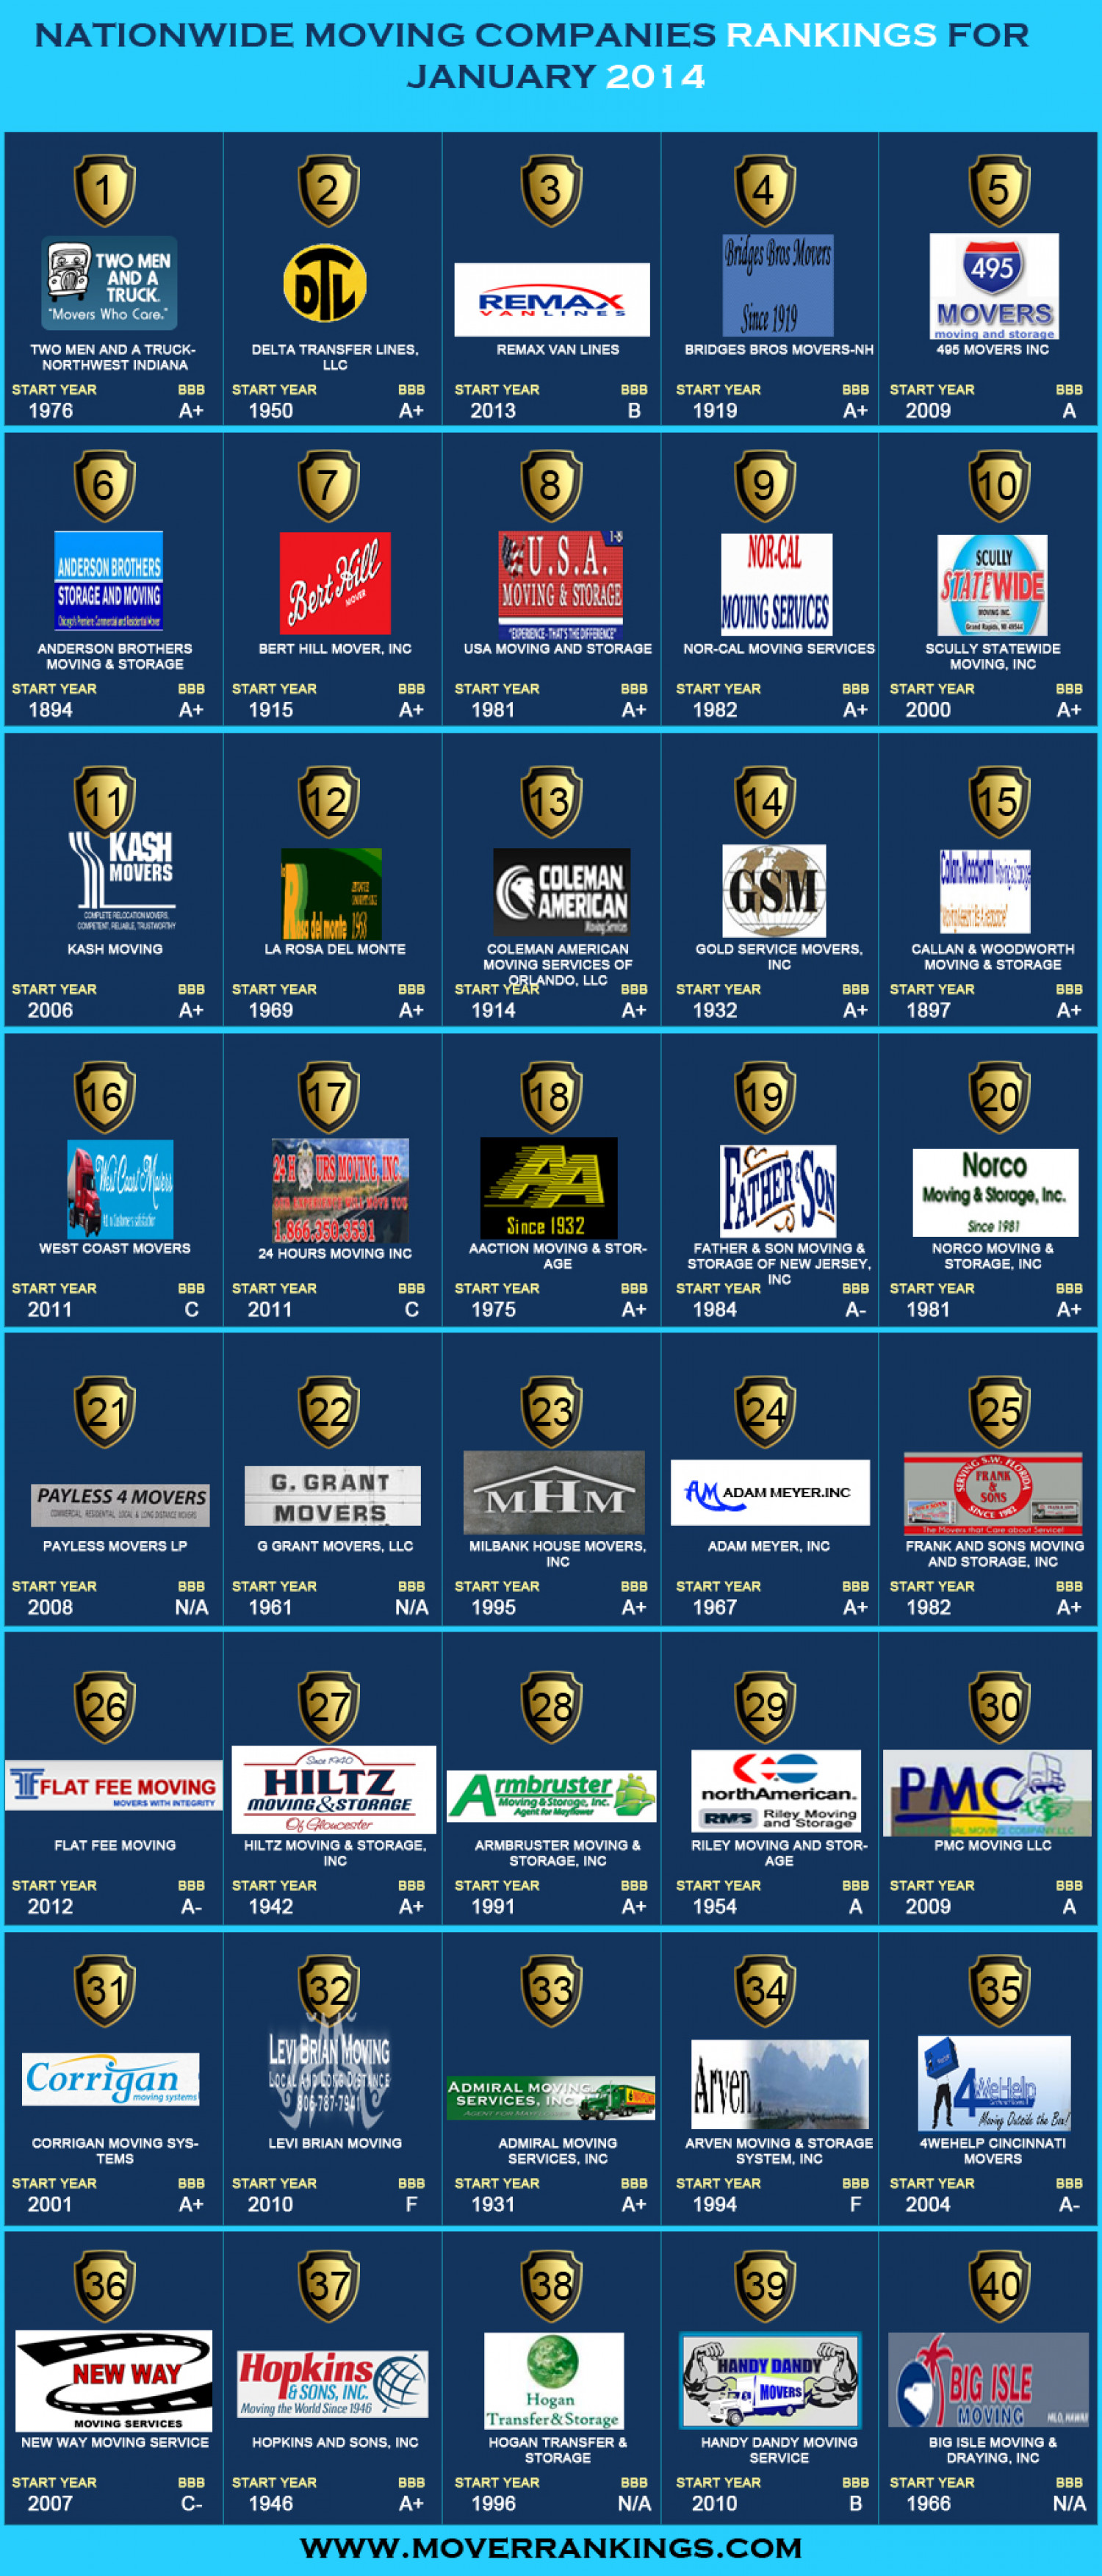 Nationwide Moving Companies Rankings - January 2014 Infographic